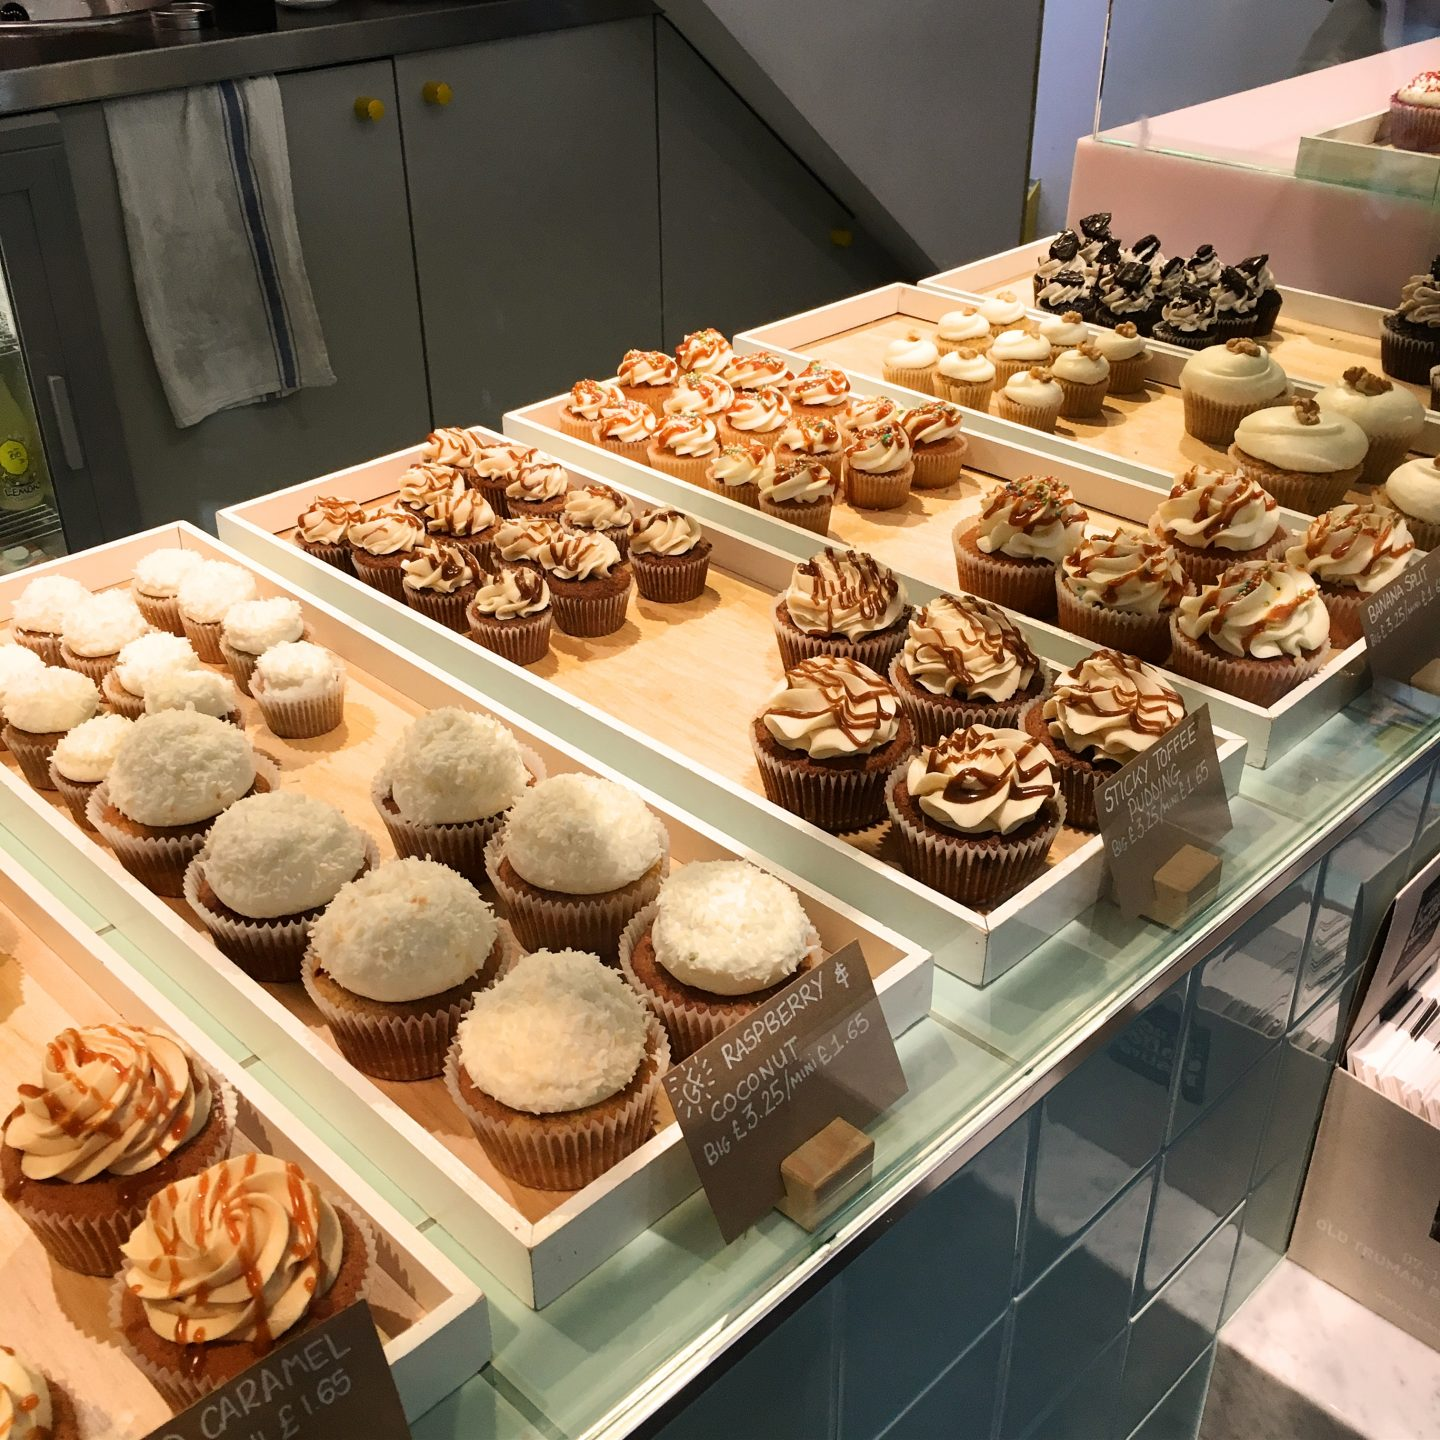 A spot of Heaven in Soho: Crumbs and Doilies